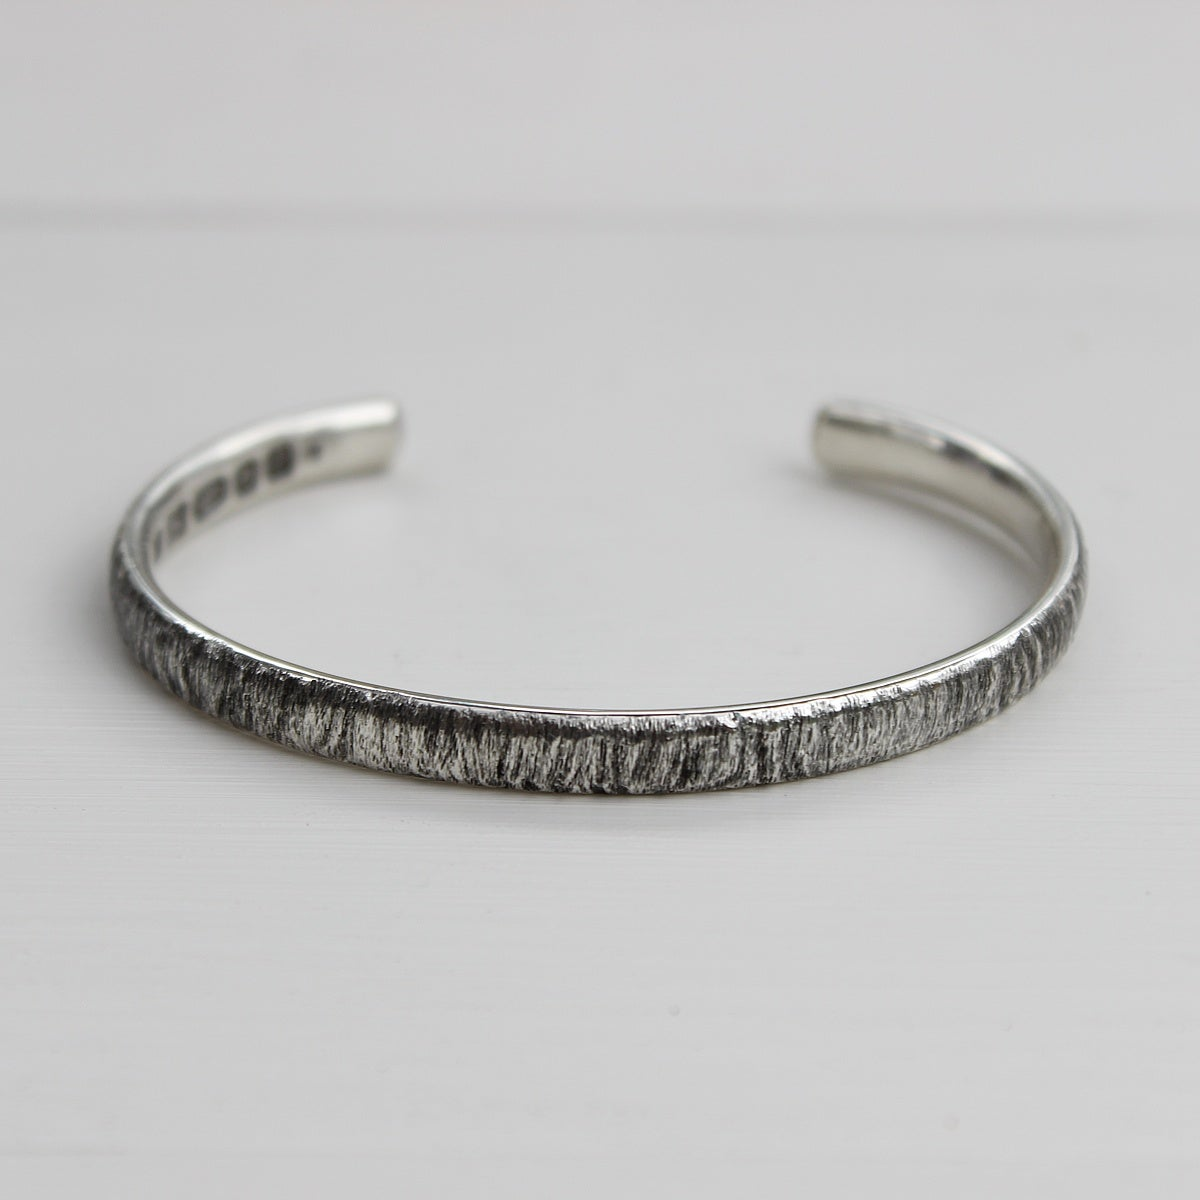 Image of men's horn texture bangle (medium weight)